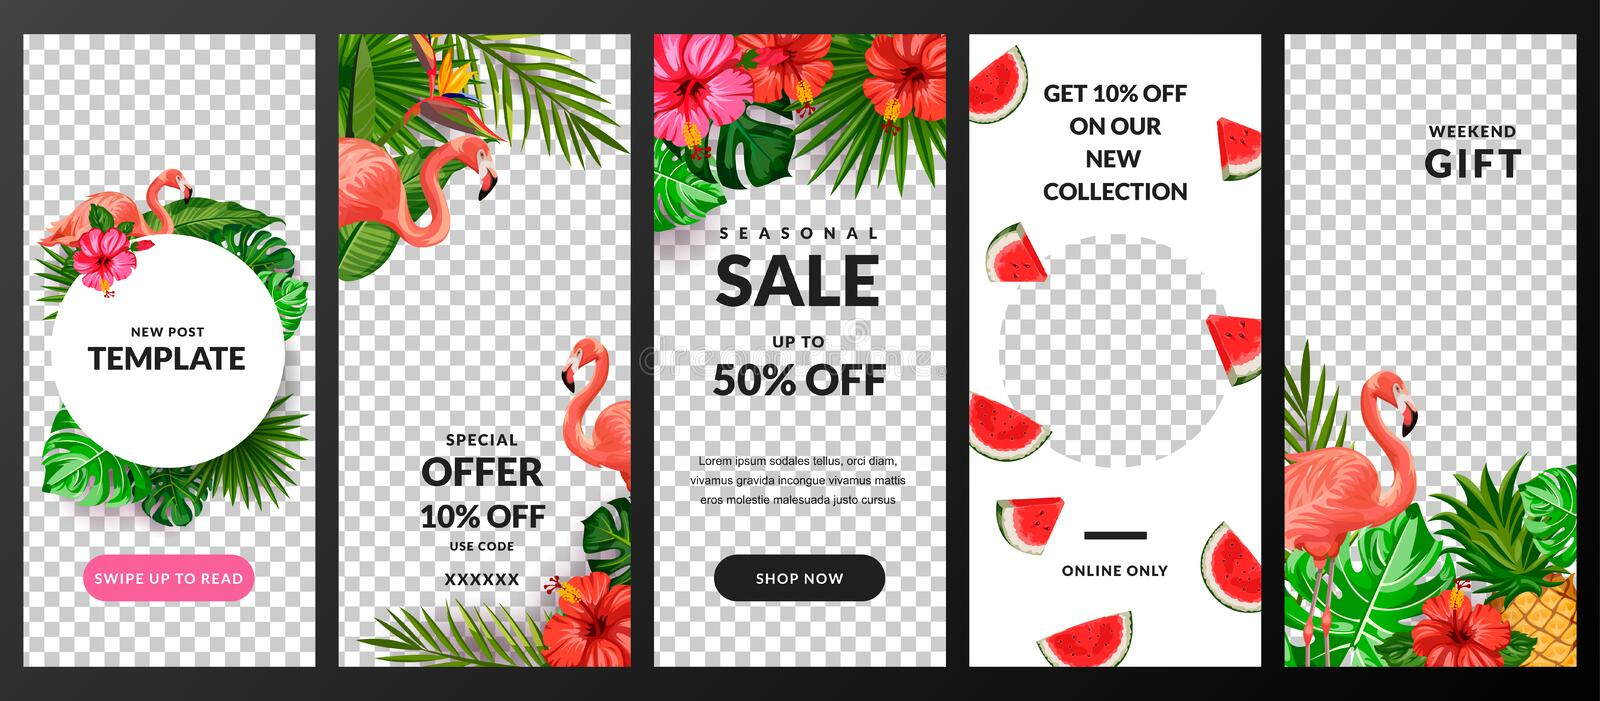 Stories, news or new post vector template for social network. Story background with tropical palm leaves and flamingo stock illustration